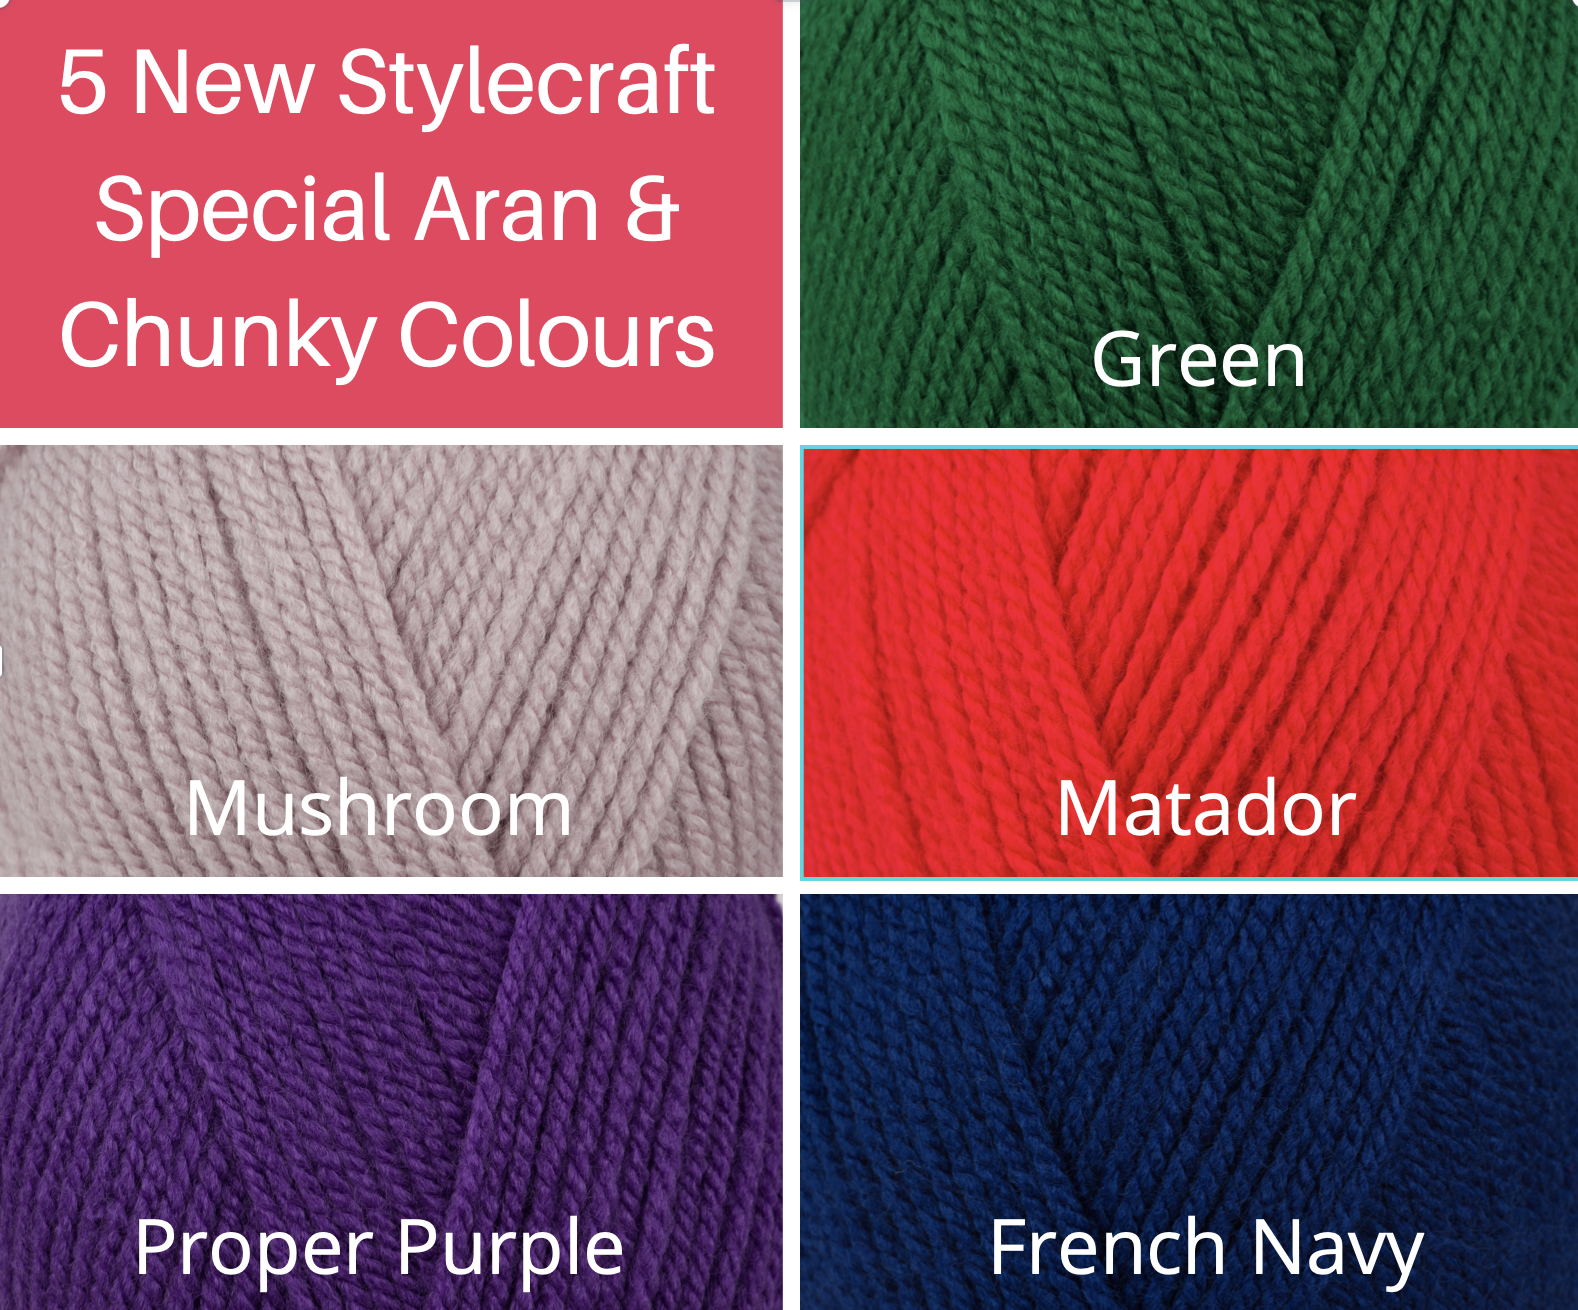 5 New Stylecraft Special Colours featured image